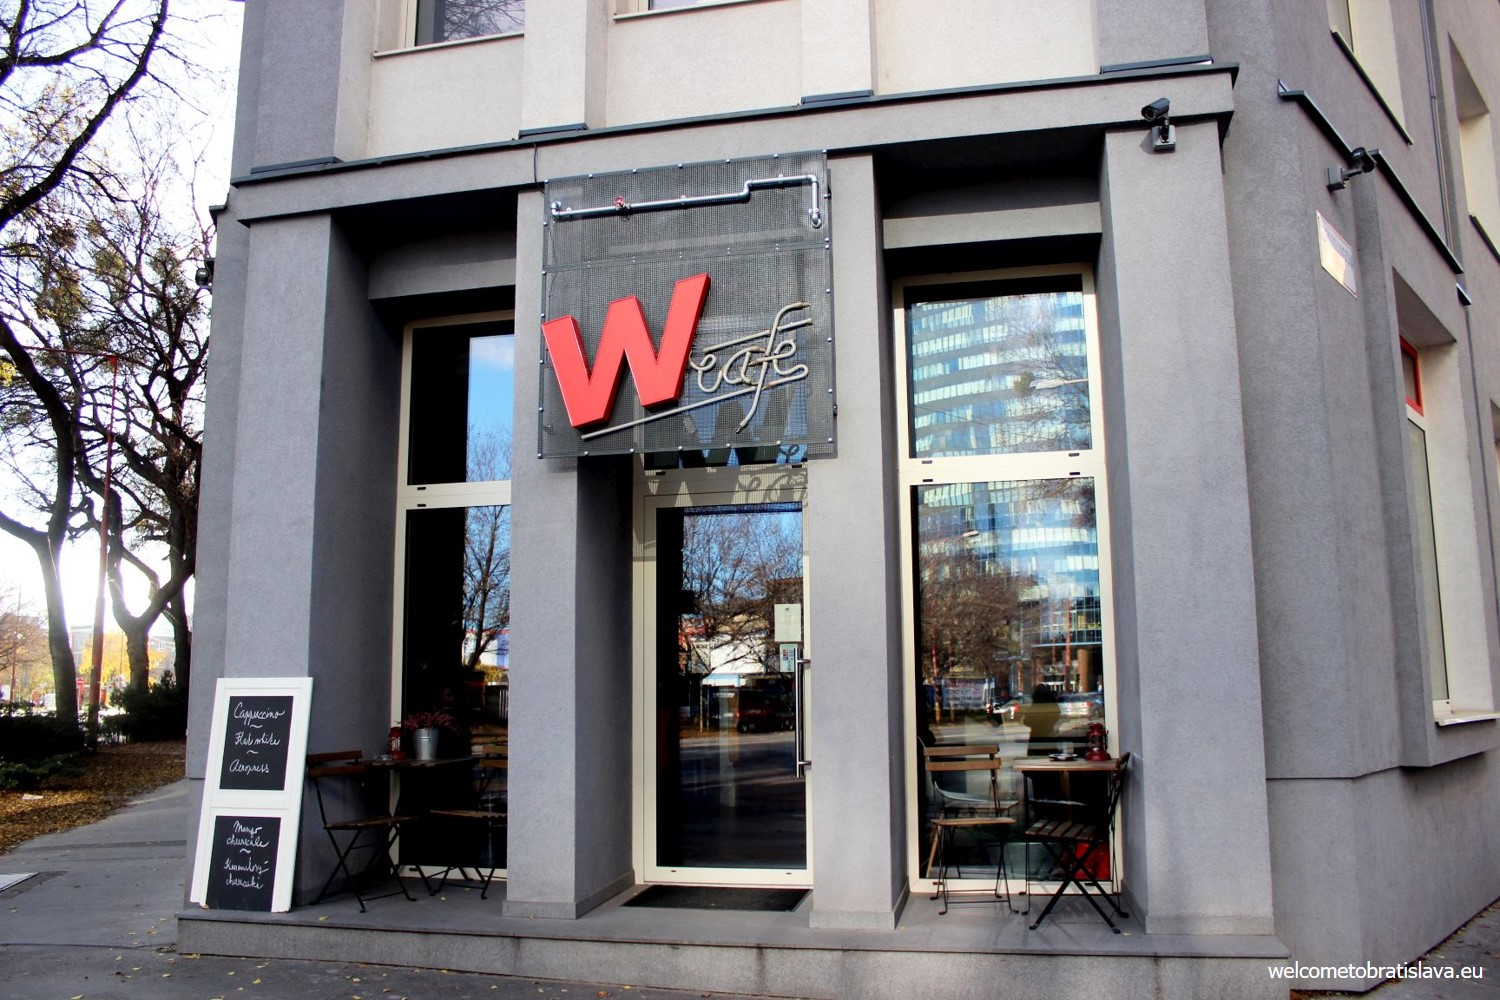 W Cafe is located on the intersection of Grosslingova, Karadzicova street and Dostojevskeho rad.